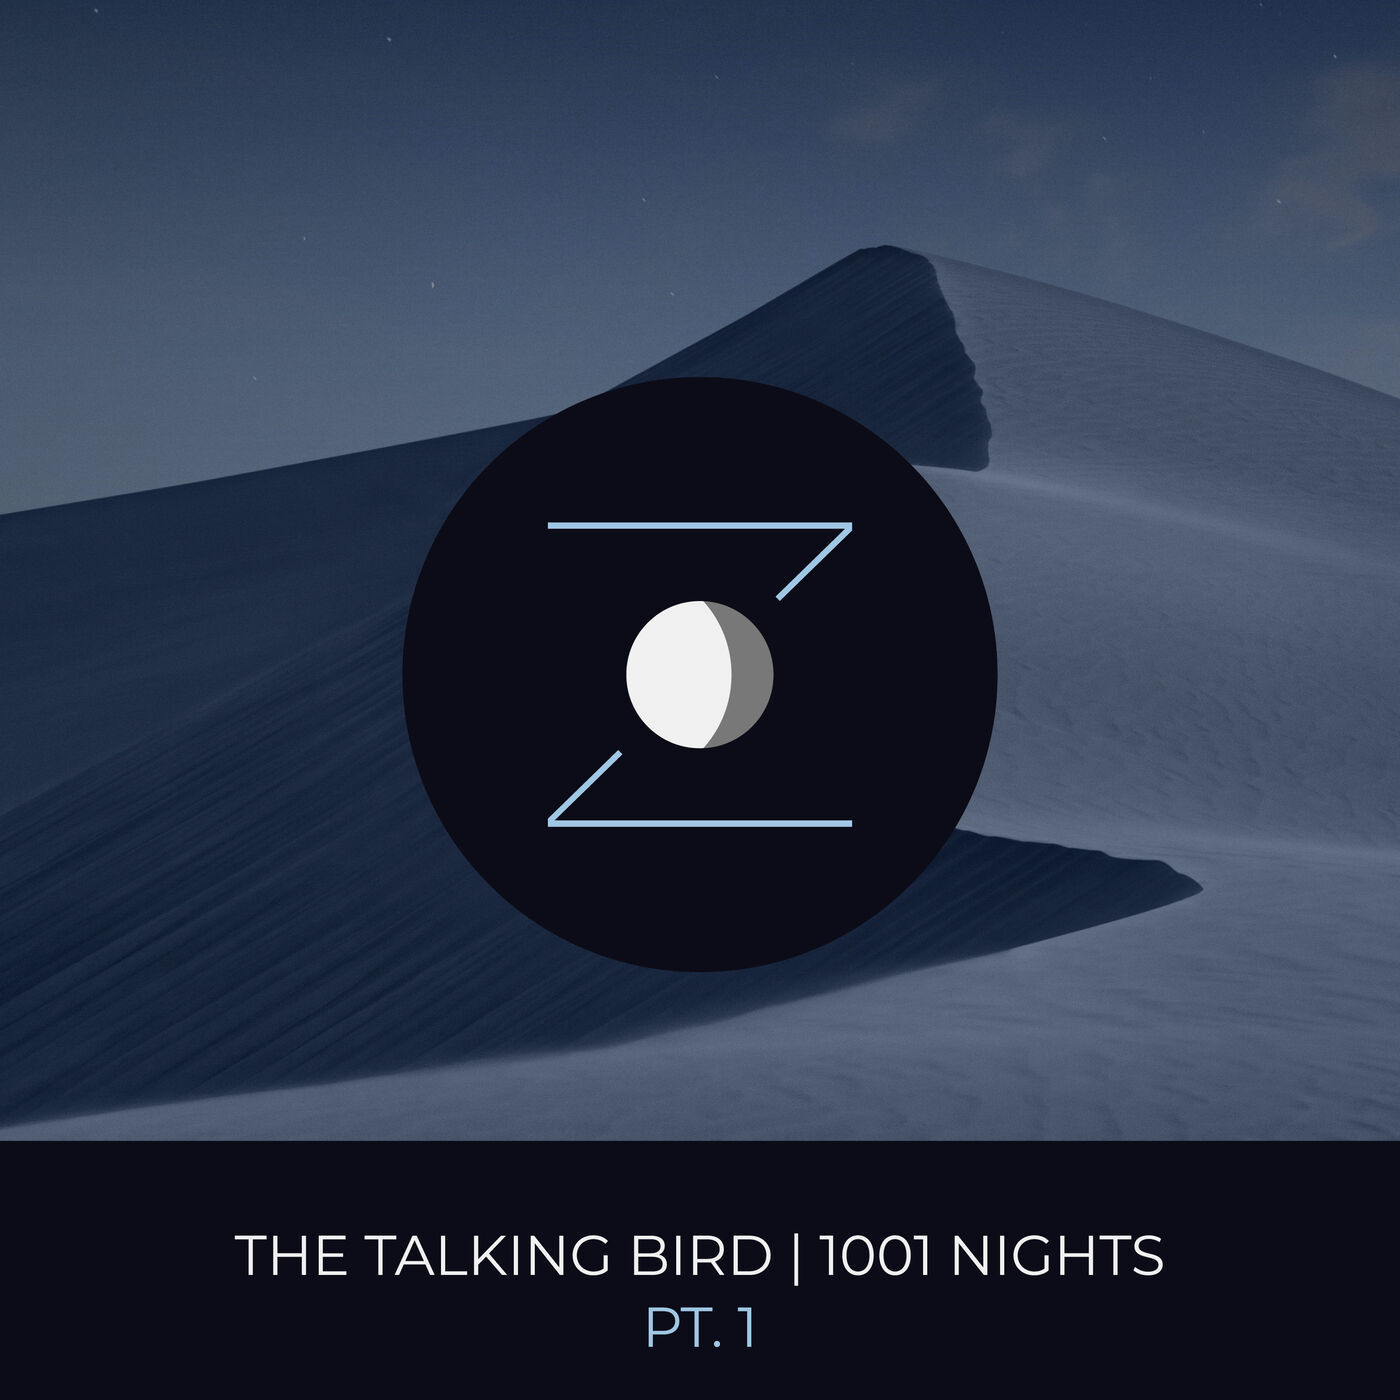 The Talking Bird pt. 1 | One Thousand and One Nights